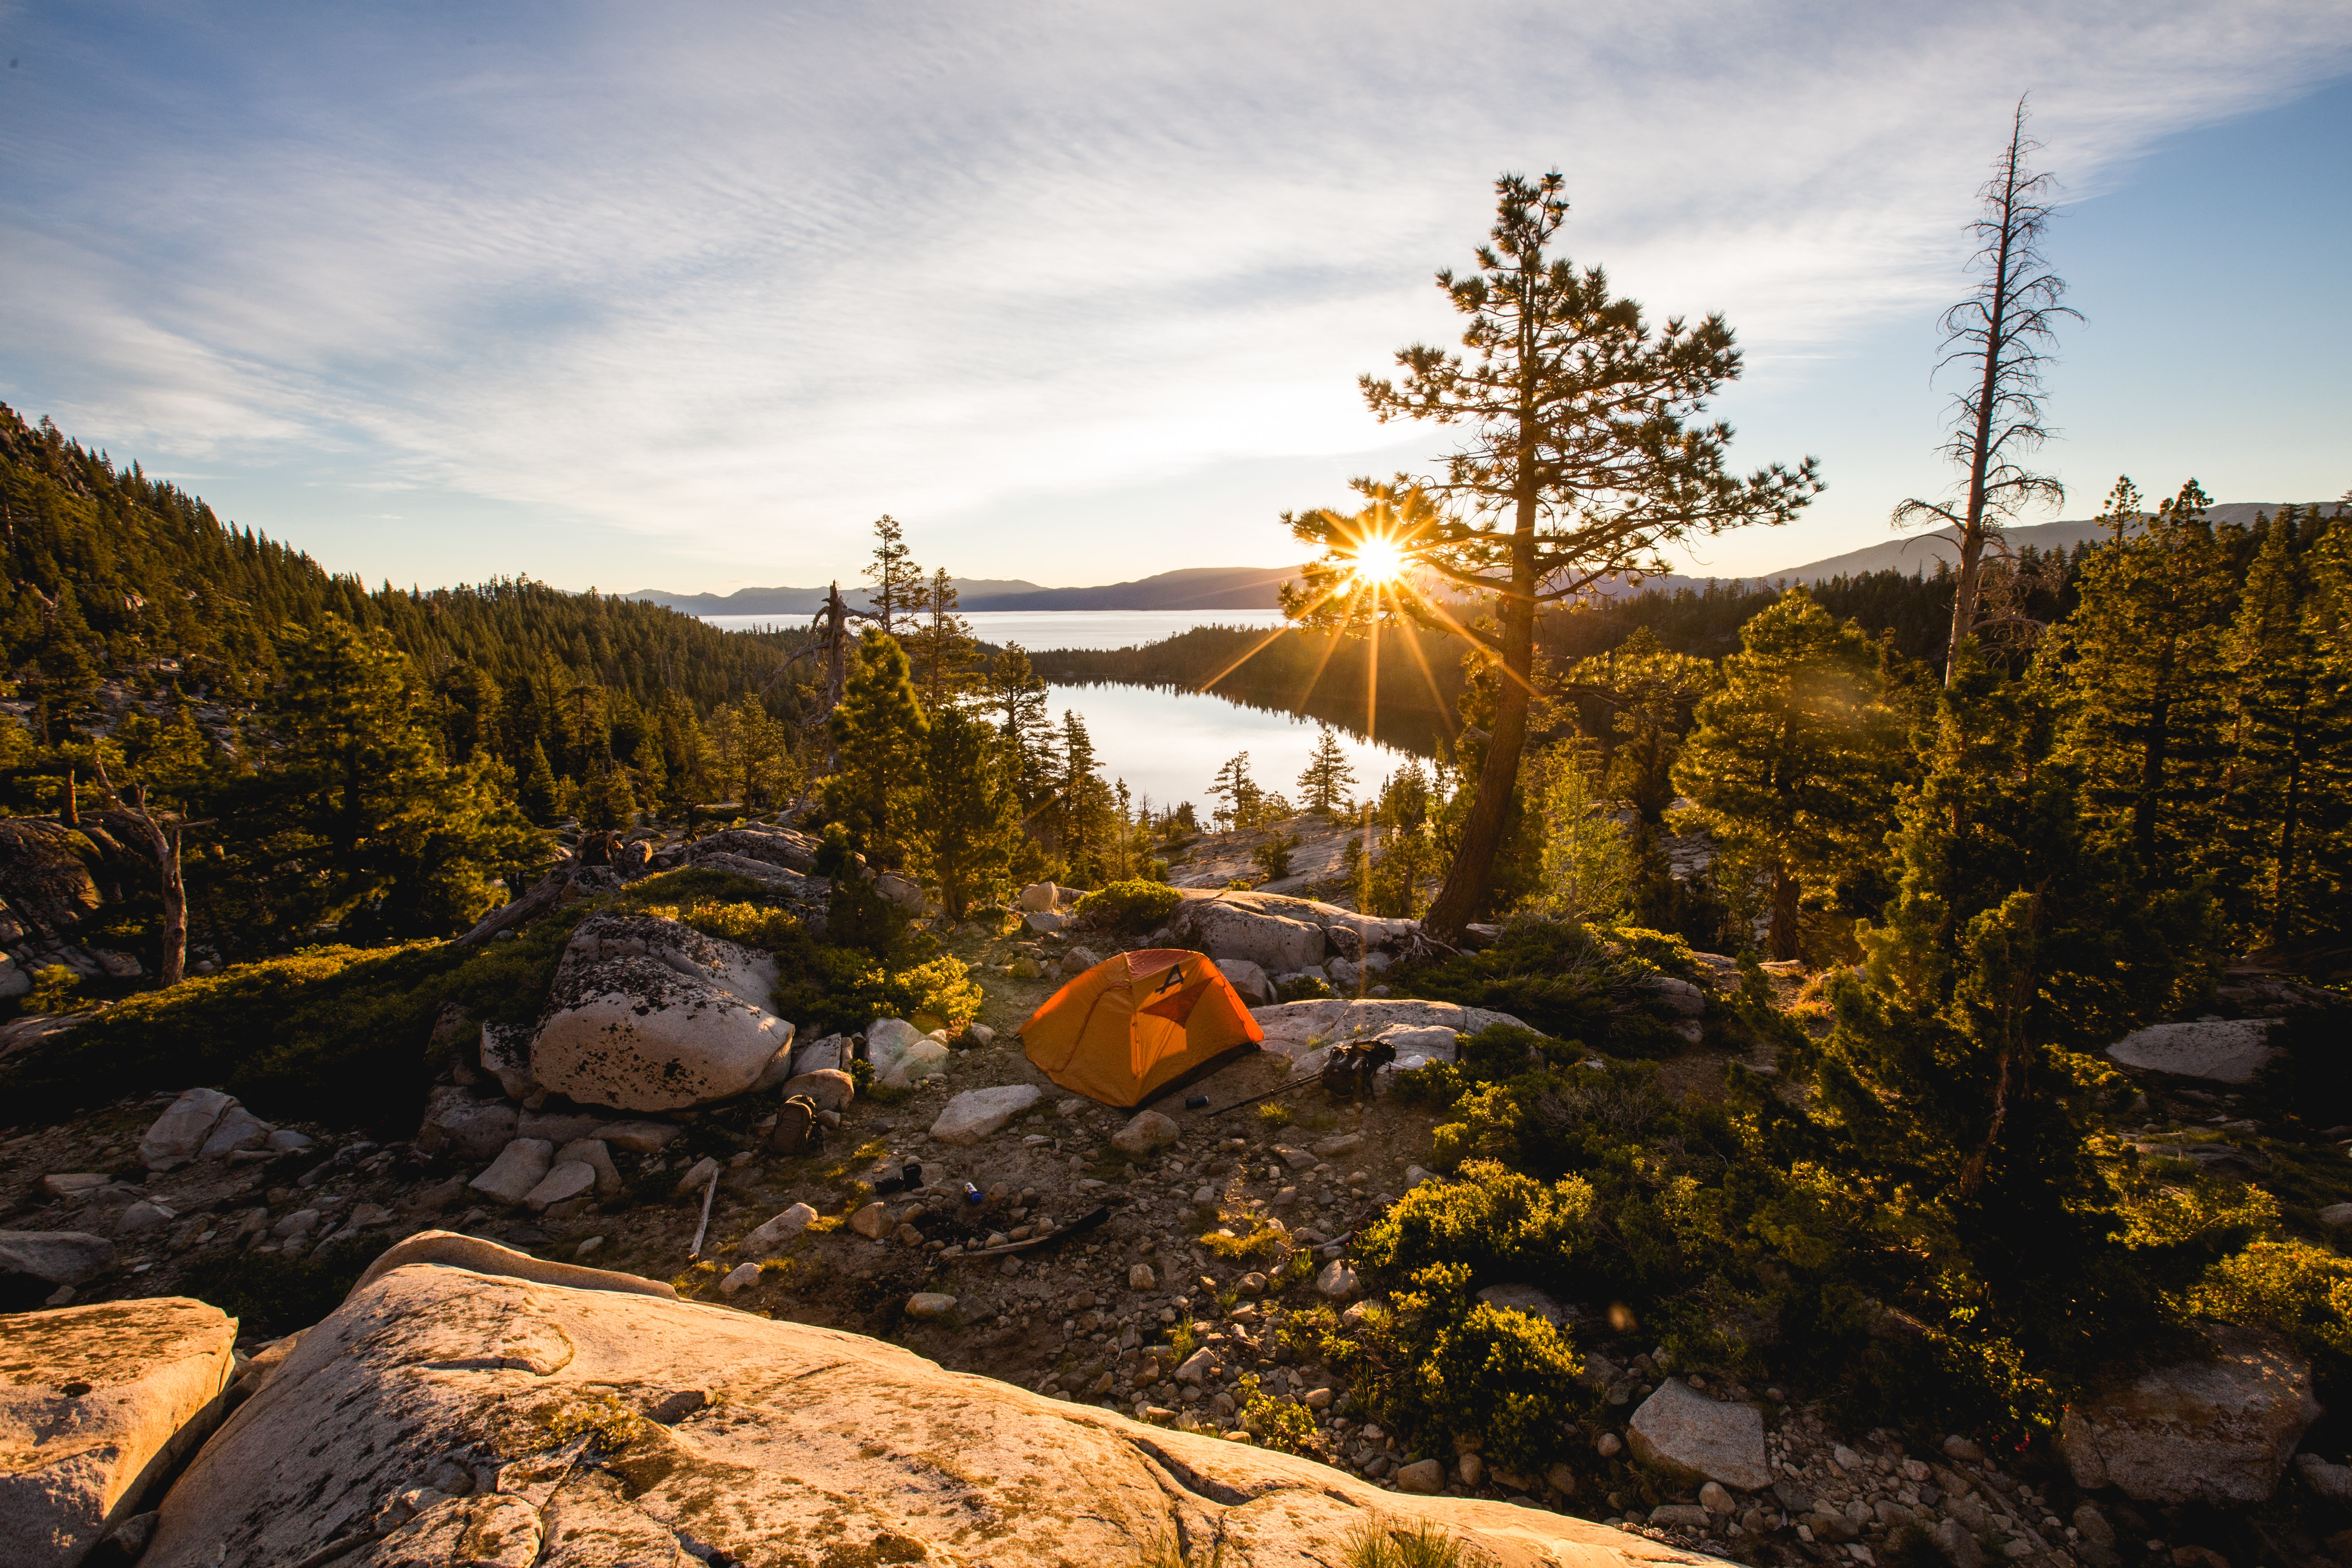 A sunrise view of a lake and forest from a mountain